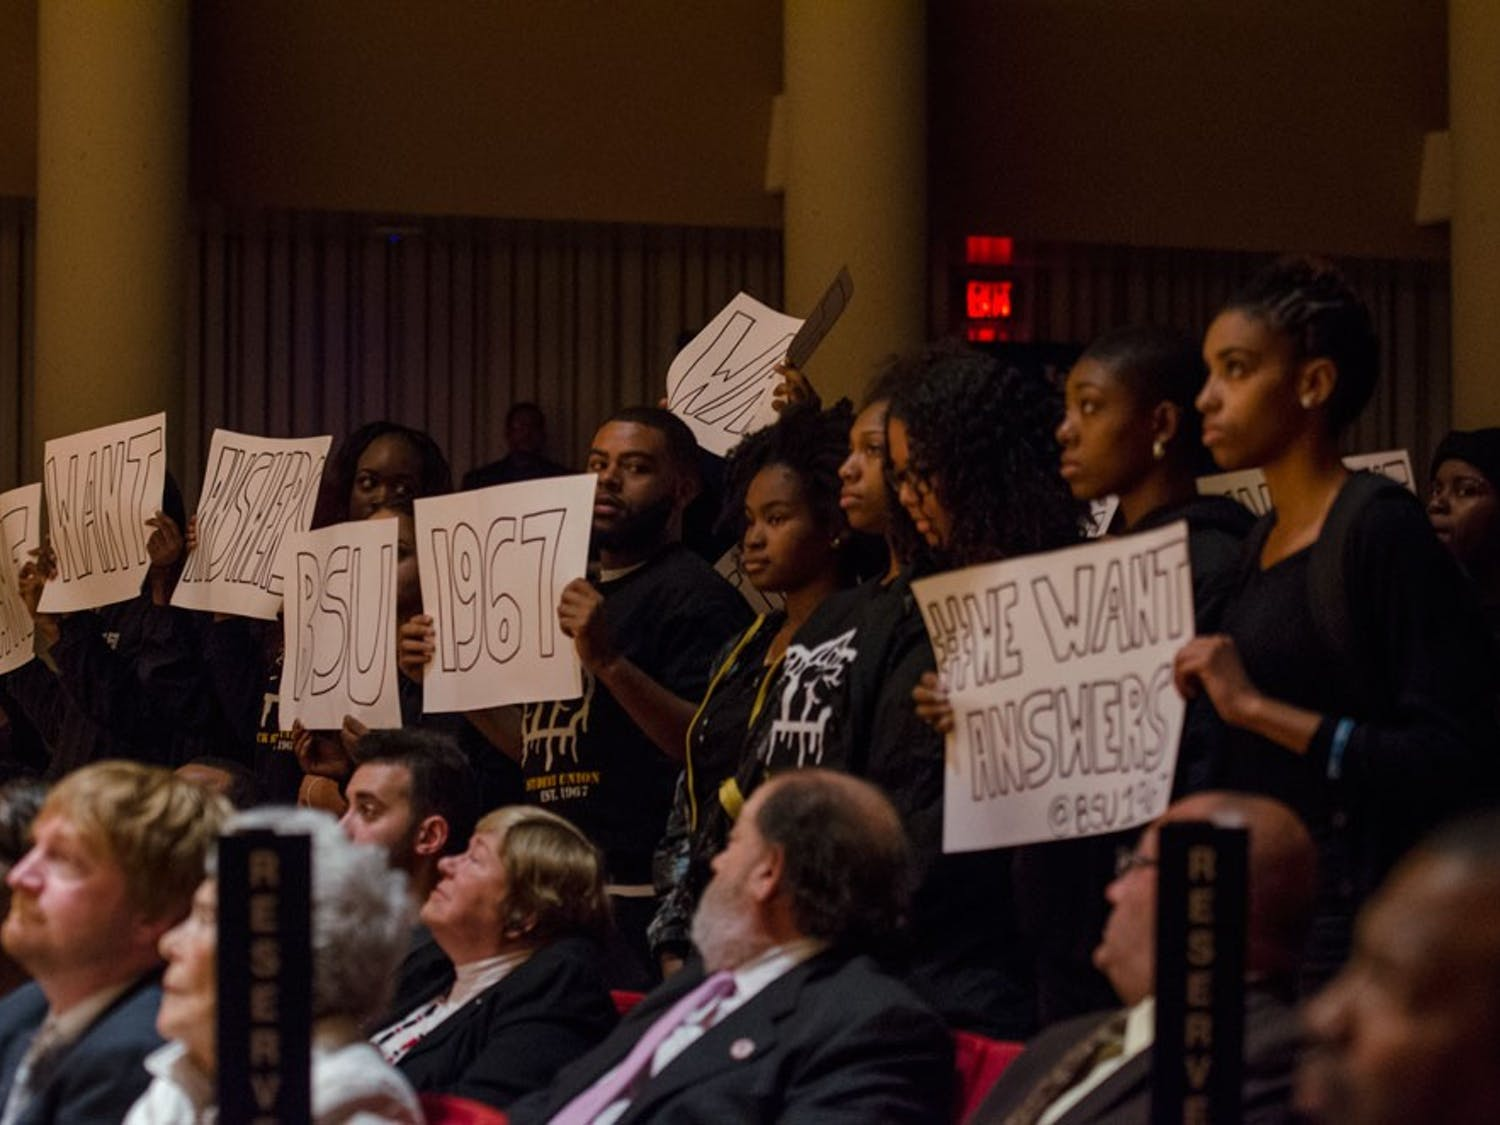 """Members of the Black Student Union held a peaceful protest during President Satish Tripathi's annual State of theUniversityAddressin response to the controversial race art project and the university's response. Students stood and raised white posters in the air that read """"We Want Answers"""" and left early to stand in the Slee Hall lobby and protest as people grabbed refreshments."""